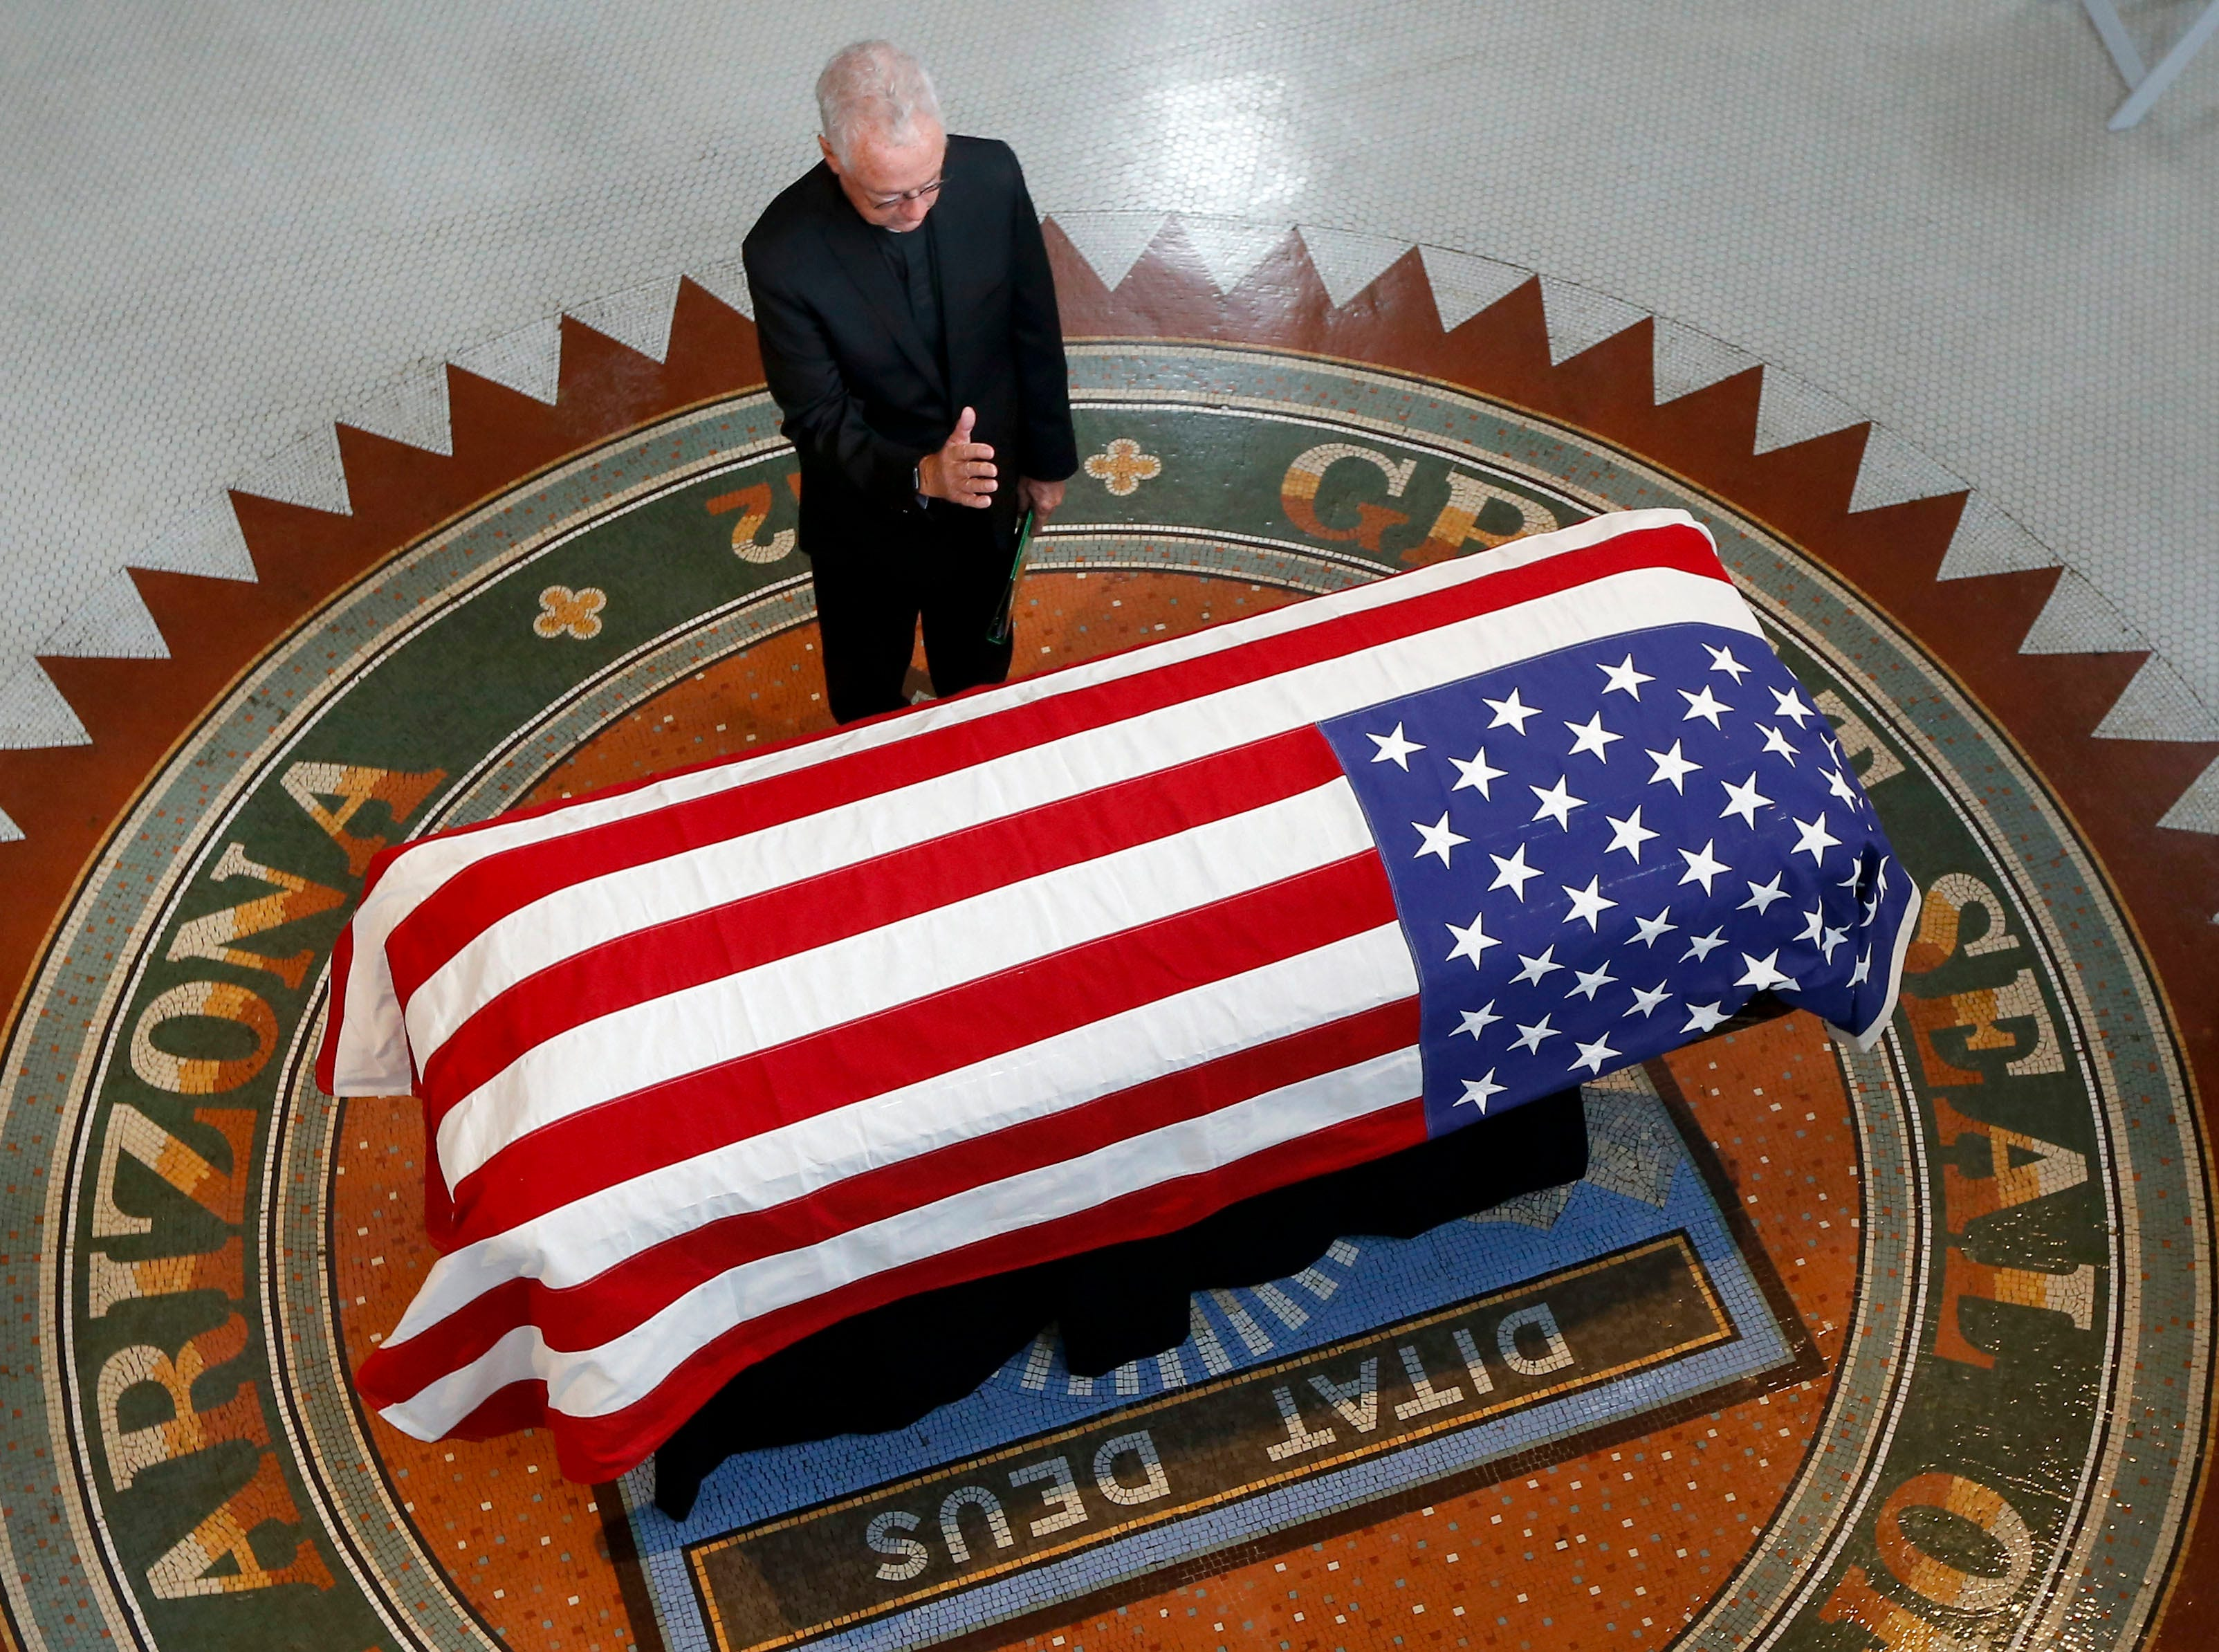 Father Edward A. Reese prays over the casket during a memorial service for Sen. John McCain, R-Ariz., at the Arizona Capitol on Aug. 29, 2018, in Phoenix.